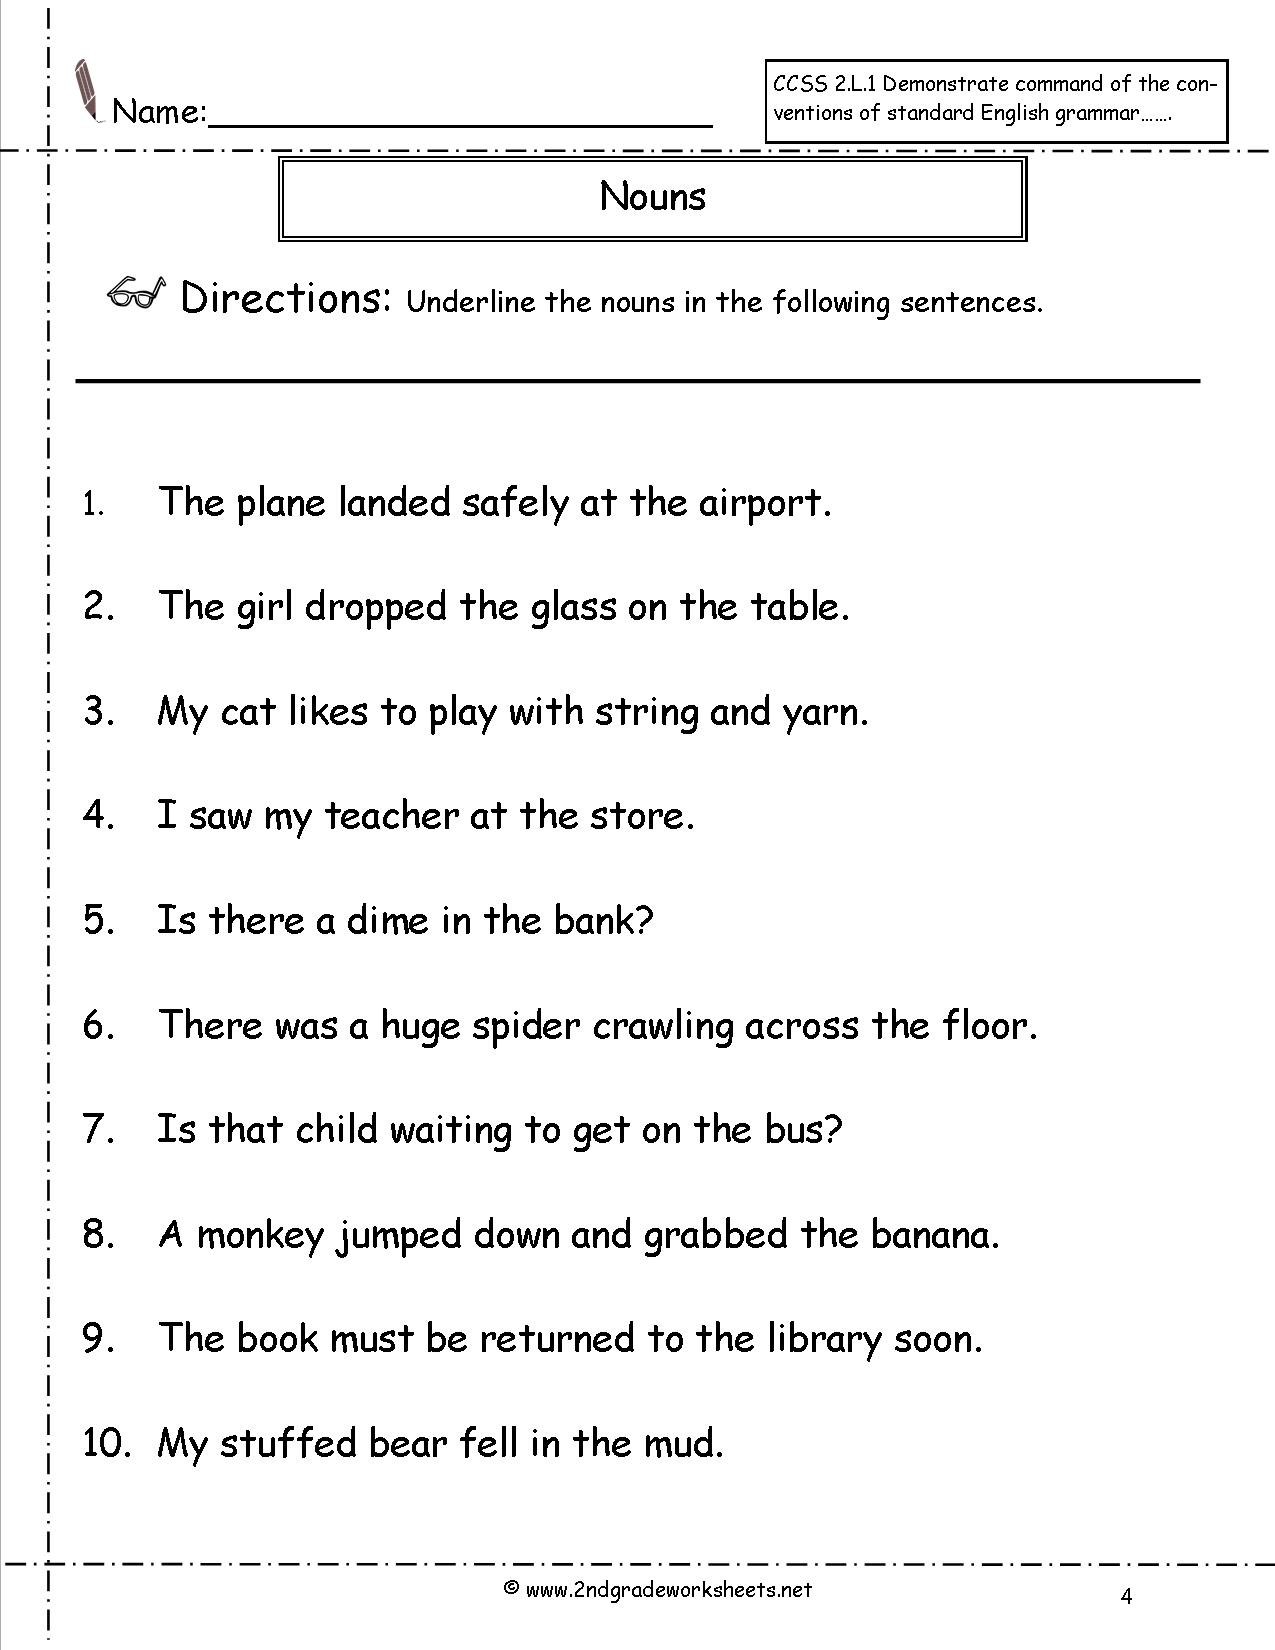 13 Best Images Of Find The Verb Worksheet